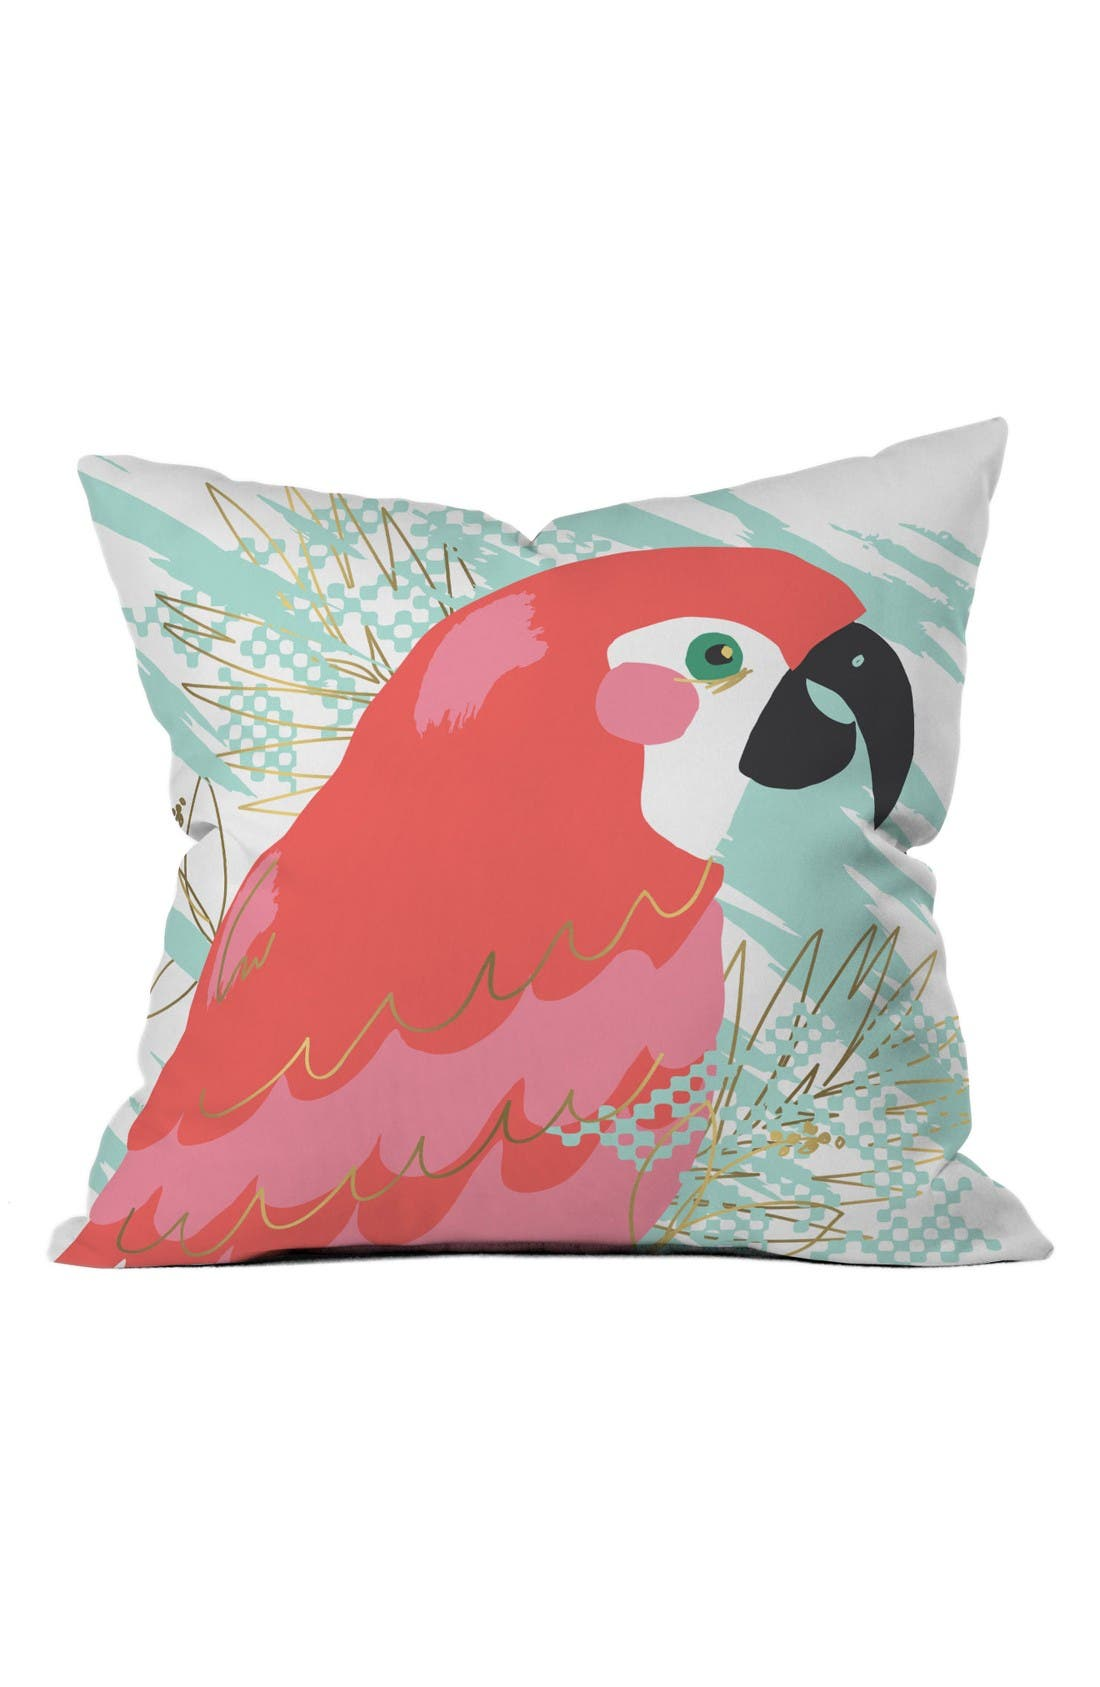 On The Wings Pillow,                             Main thumbnail 1, color,                             Pink/ Teal